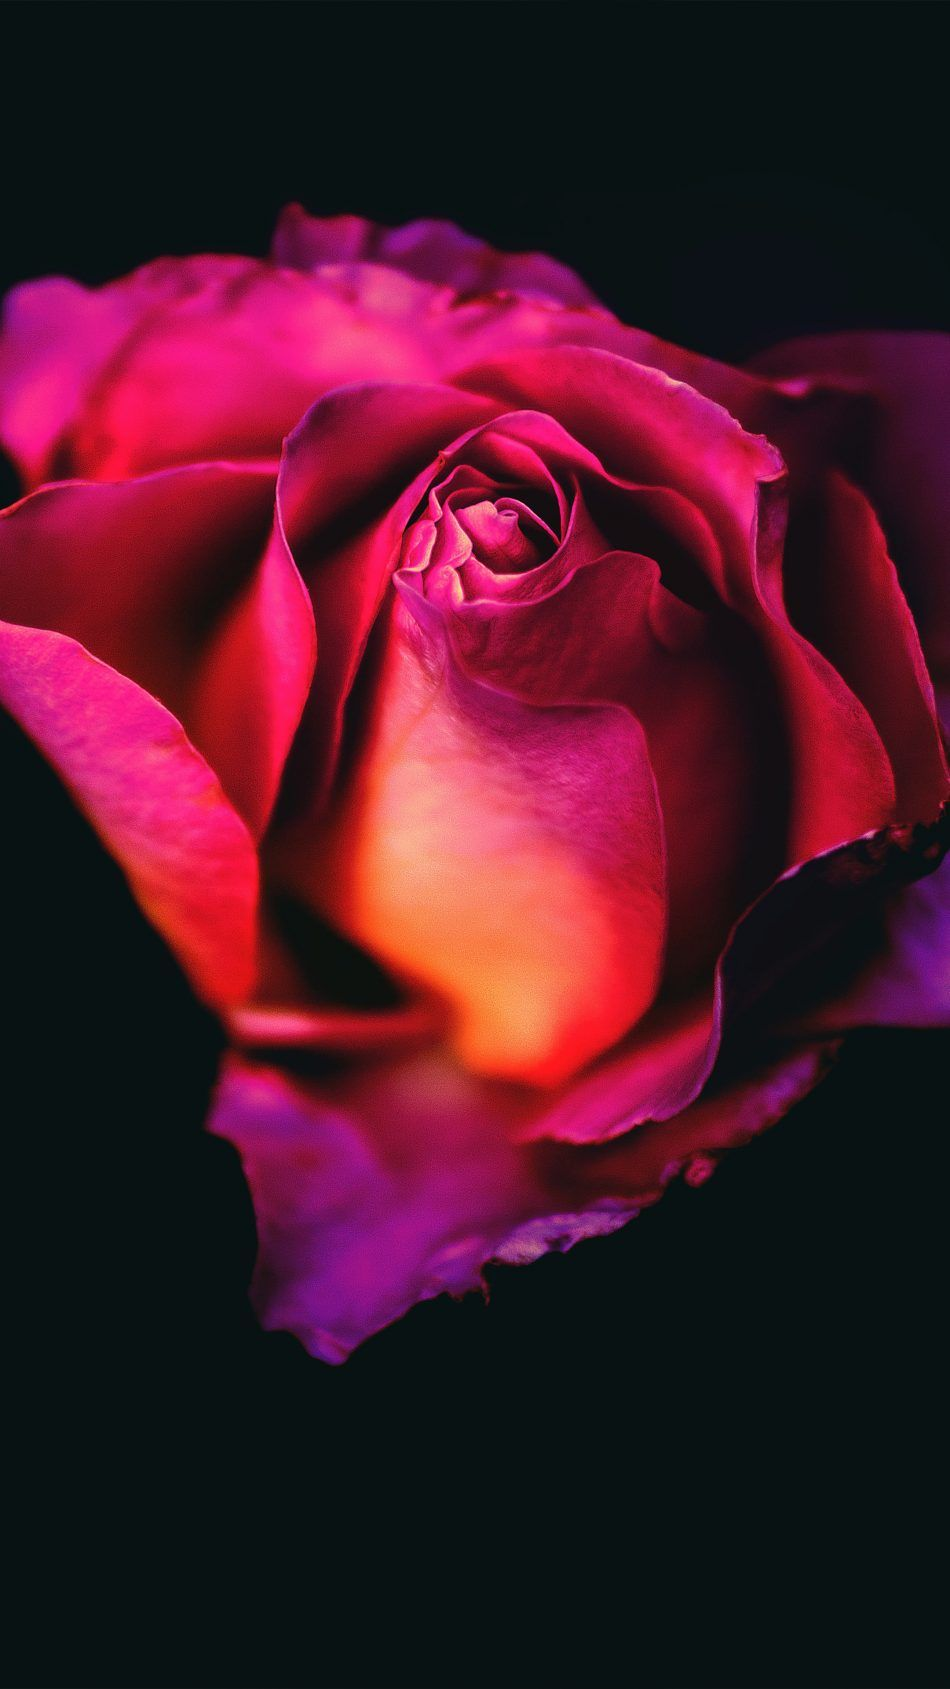 950x1689 Download Rose Flower Dark Background Free Pure 4K Ultra HD Mobile ...